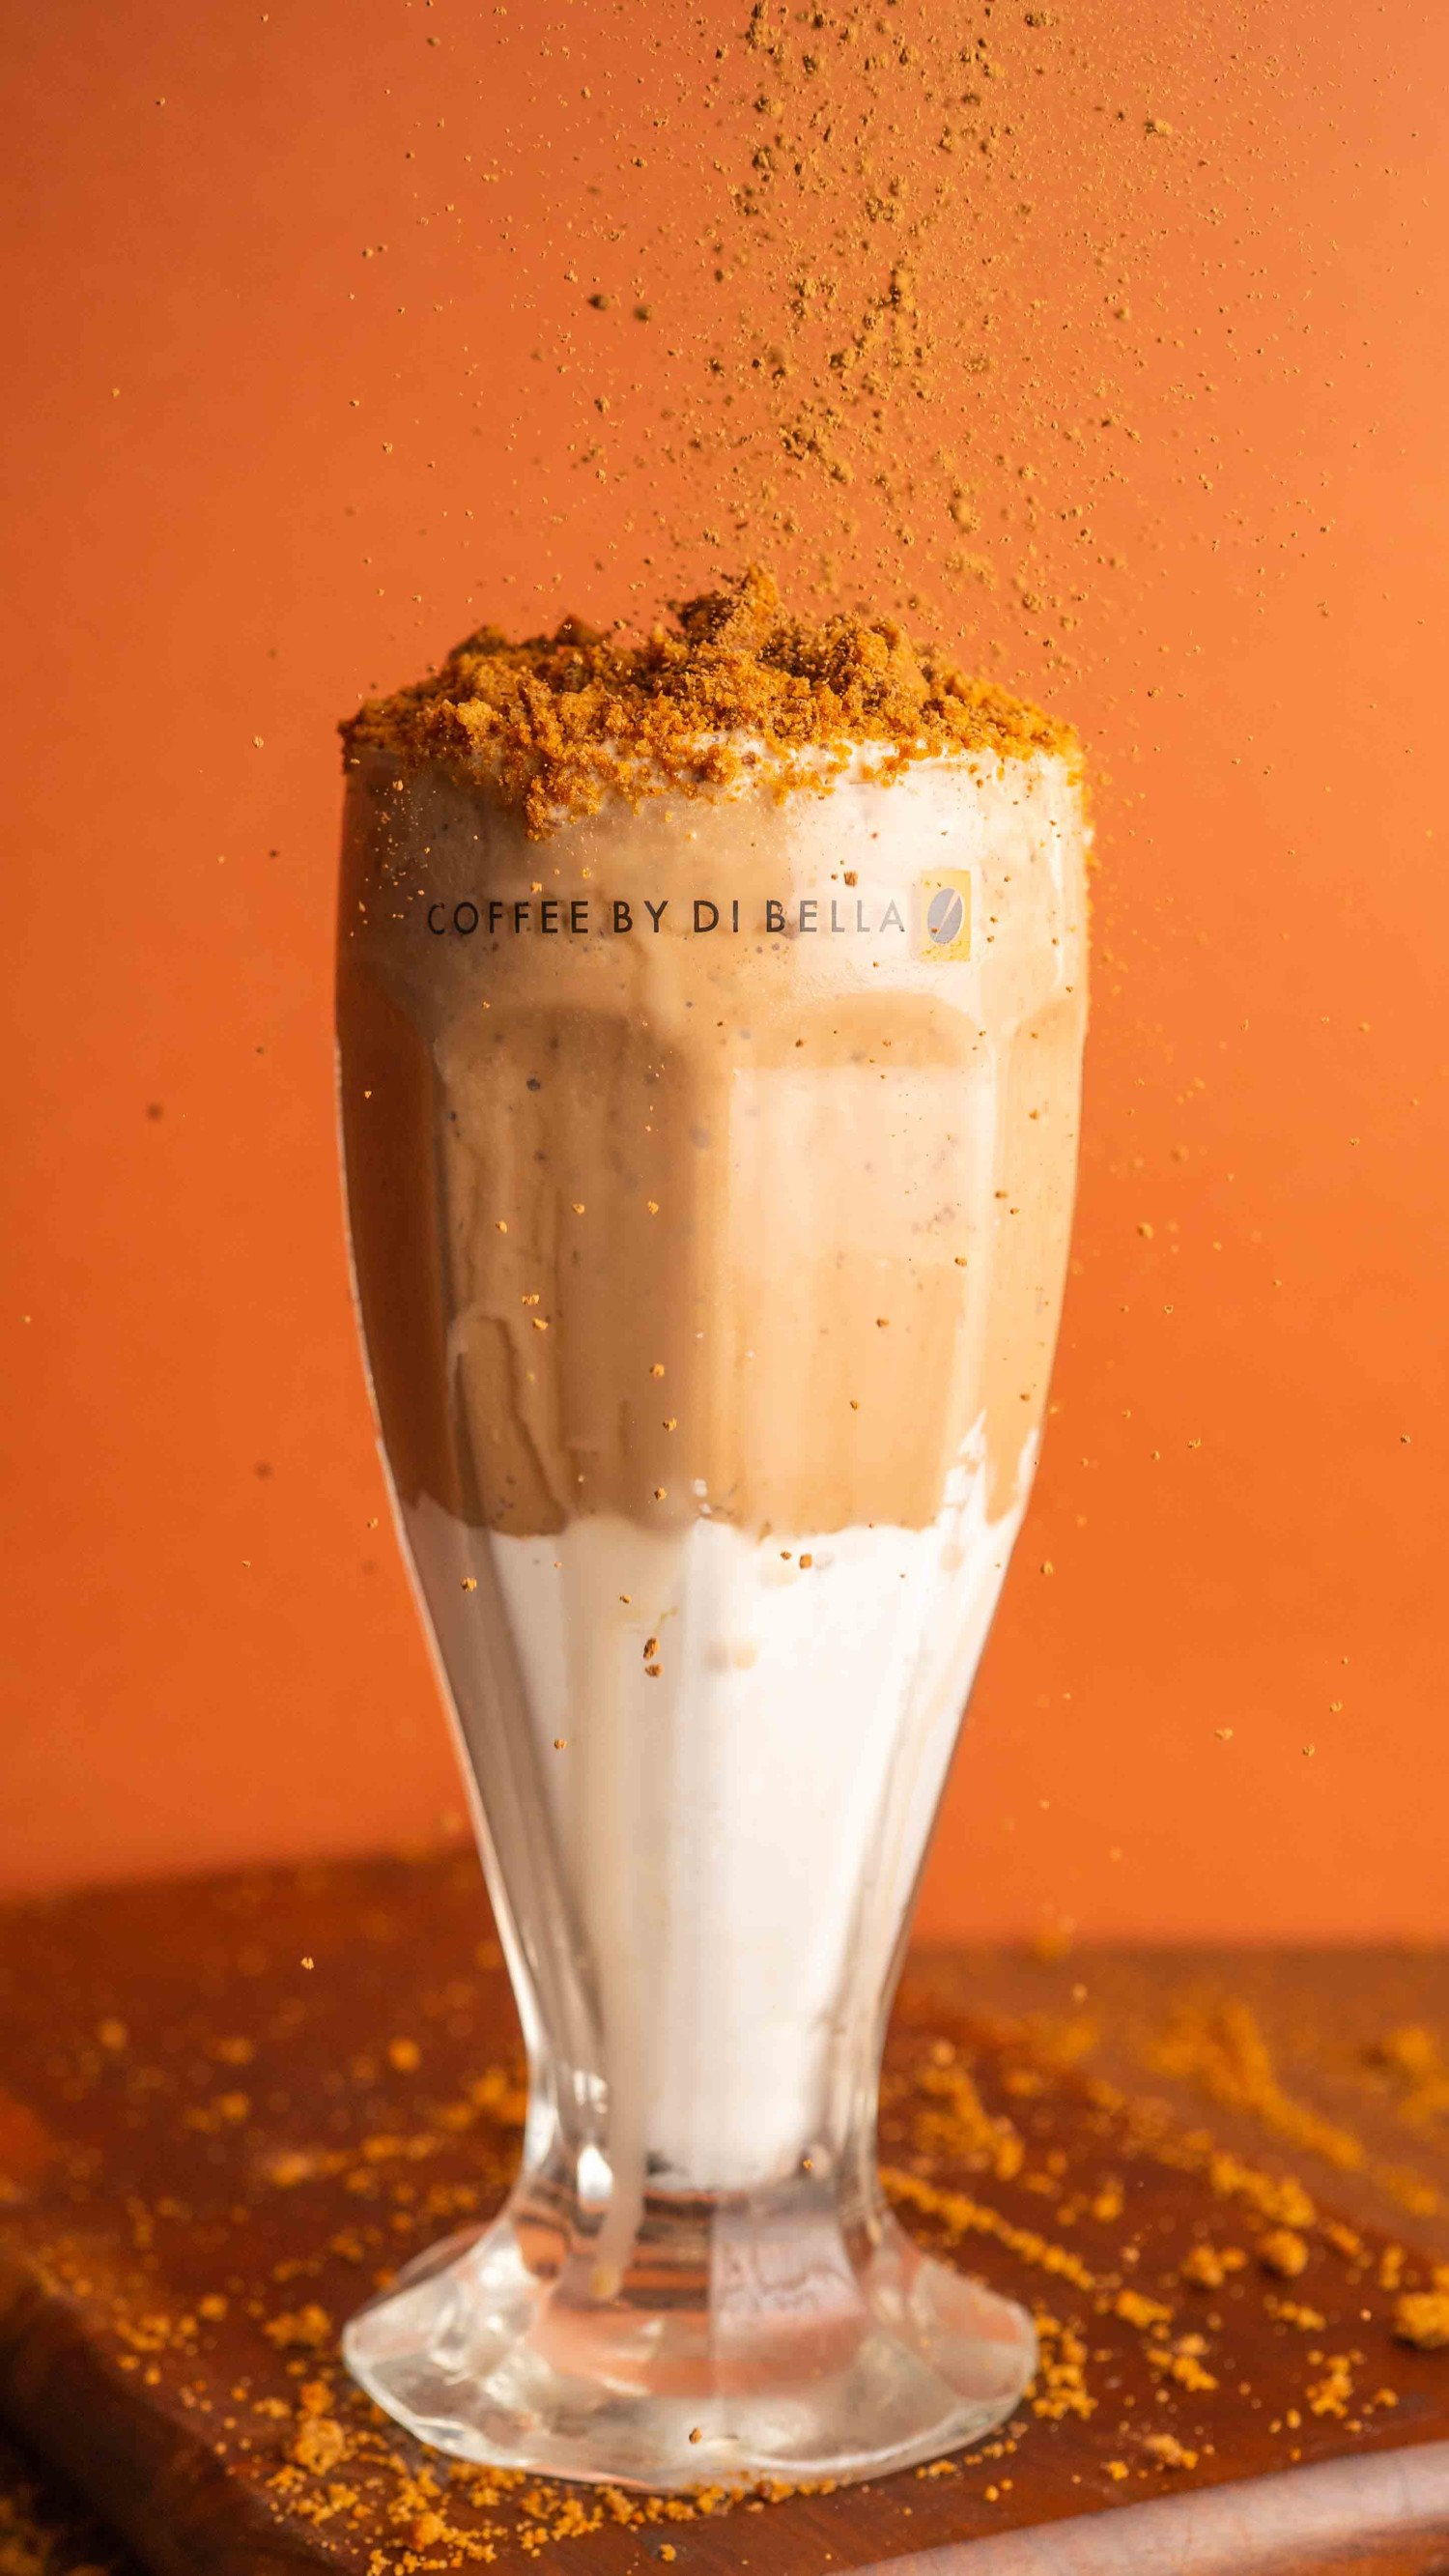 From Parle G Milkshake To A Milano Chocolate Overload, Coffee By Di Bella Has The Perfect Remedy For Mumbai's Summer